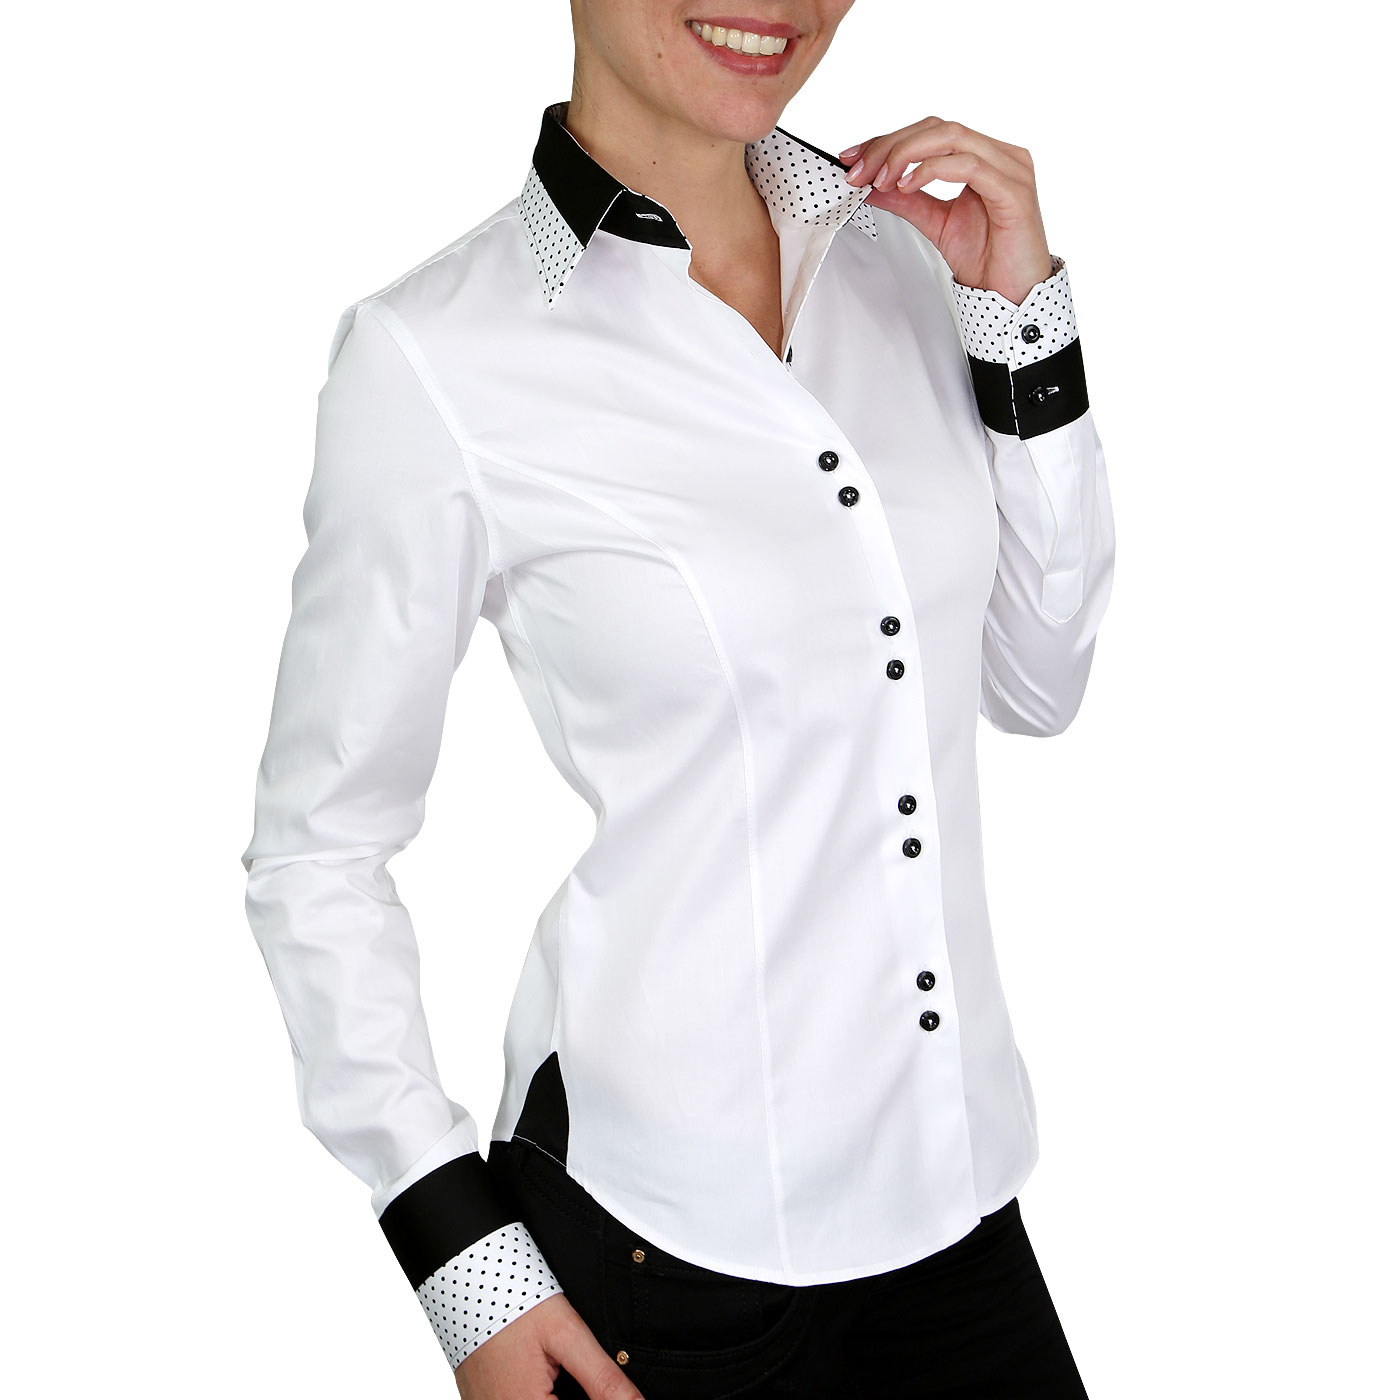 Woman's Shirt Exclusive Models on Webmenshirts